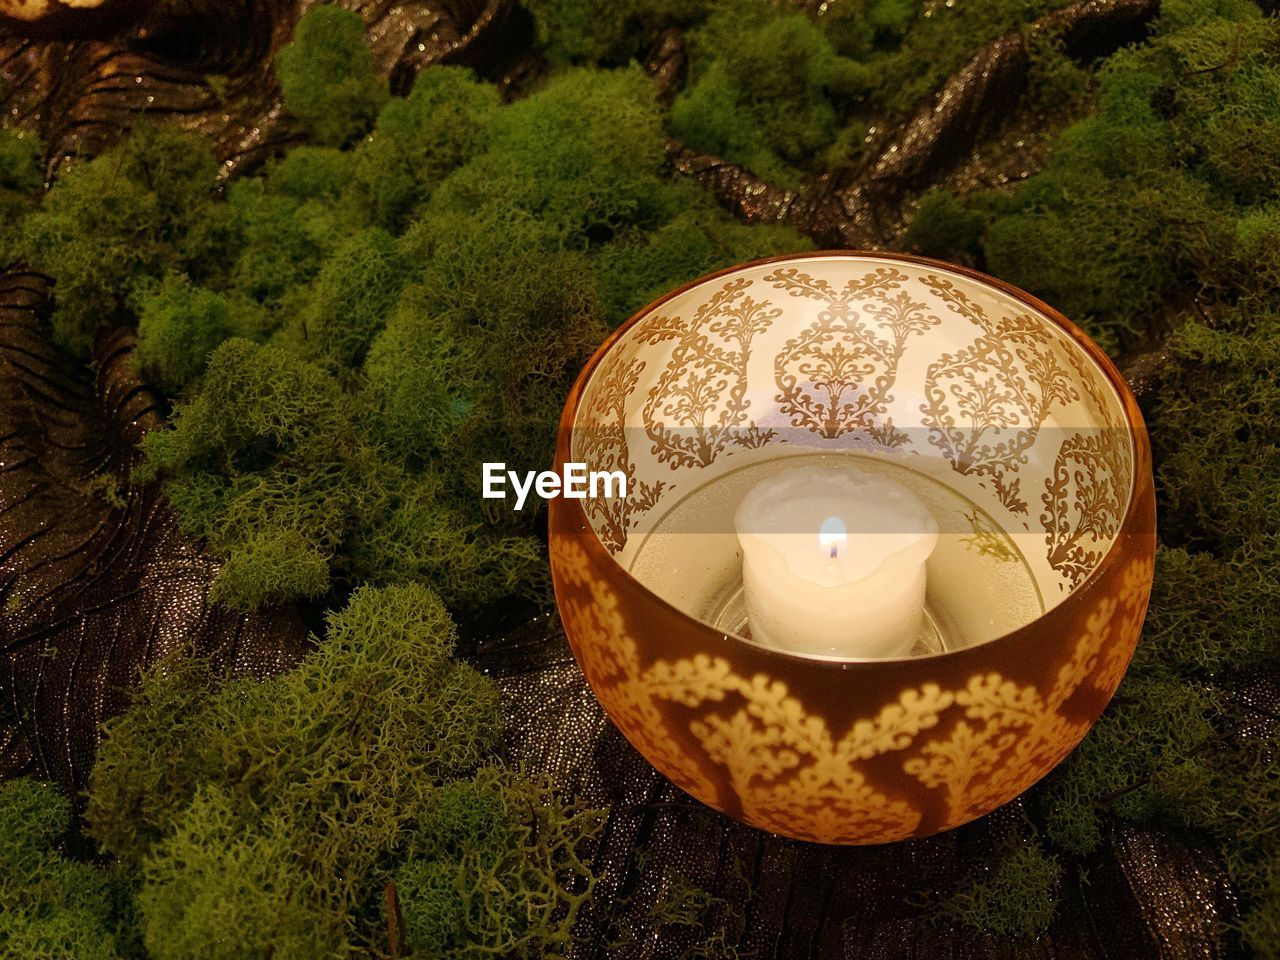 candle, burning, illuminated, plant, flame, fire, nature, lighting equipment, tree, fire - natural phenomenon, high angle view, no people, close-up, heat - temperature, glowing, land, environment, focus on foreground, outdoors, growth, electric lamp, tea light